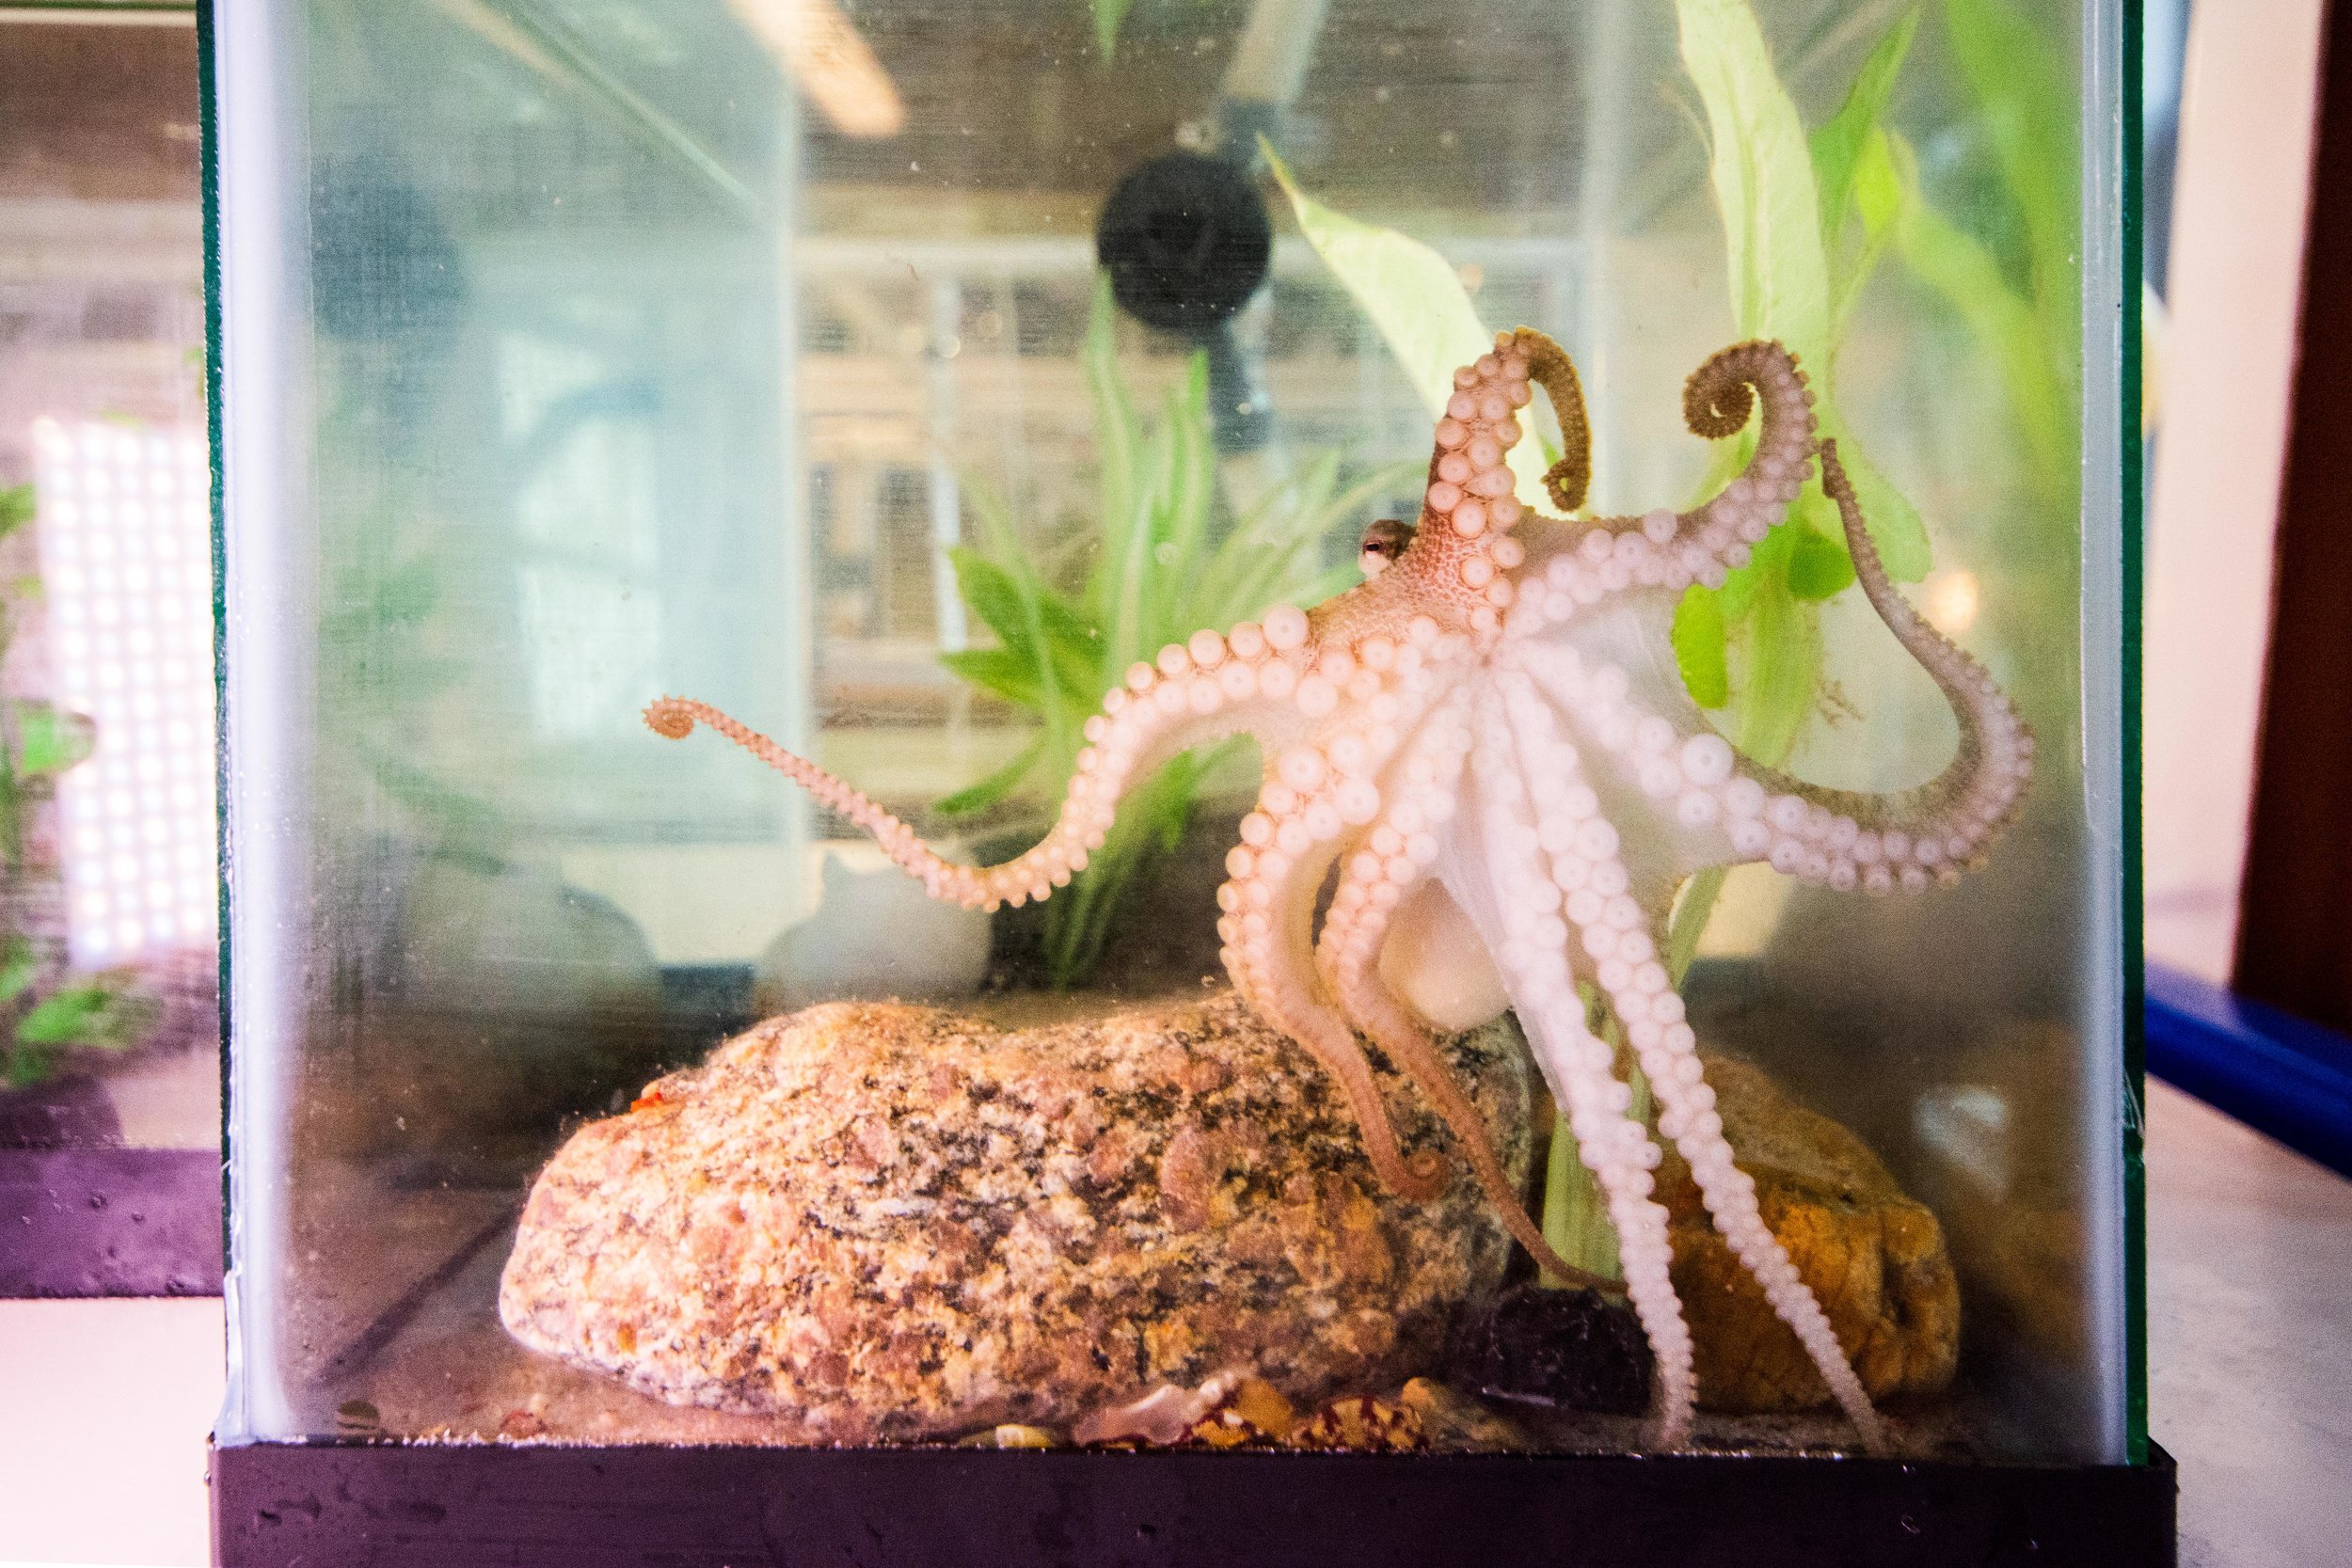 A California Two-spot octopus peers over its arms with one eye as it hugs the wall with 8 arms in the outreach tank at the MBL.